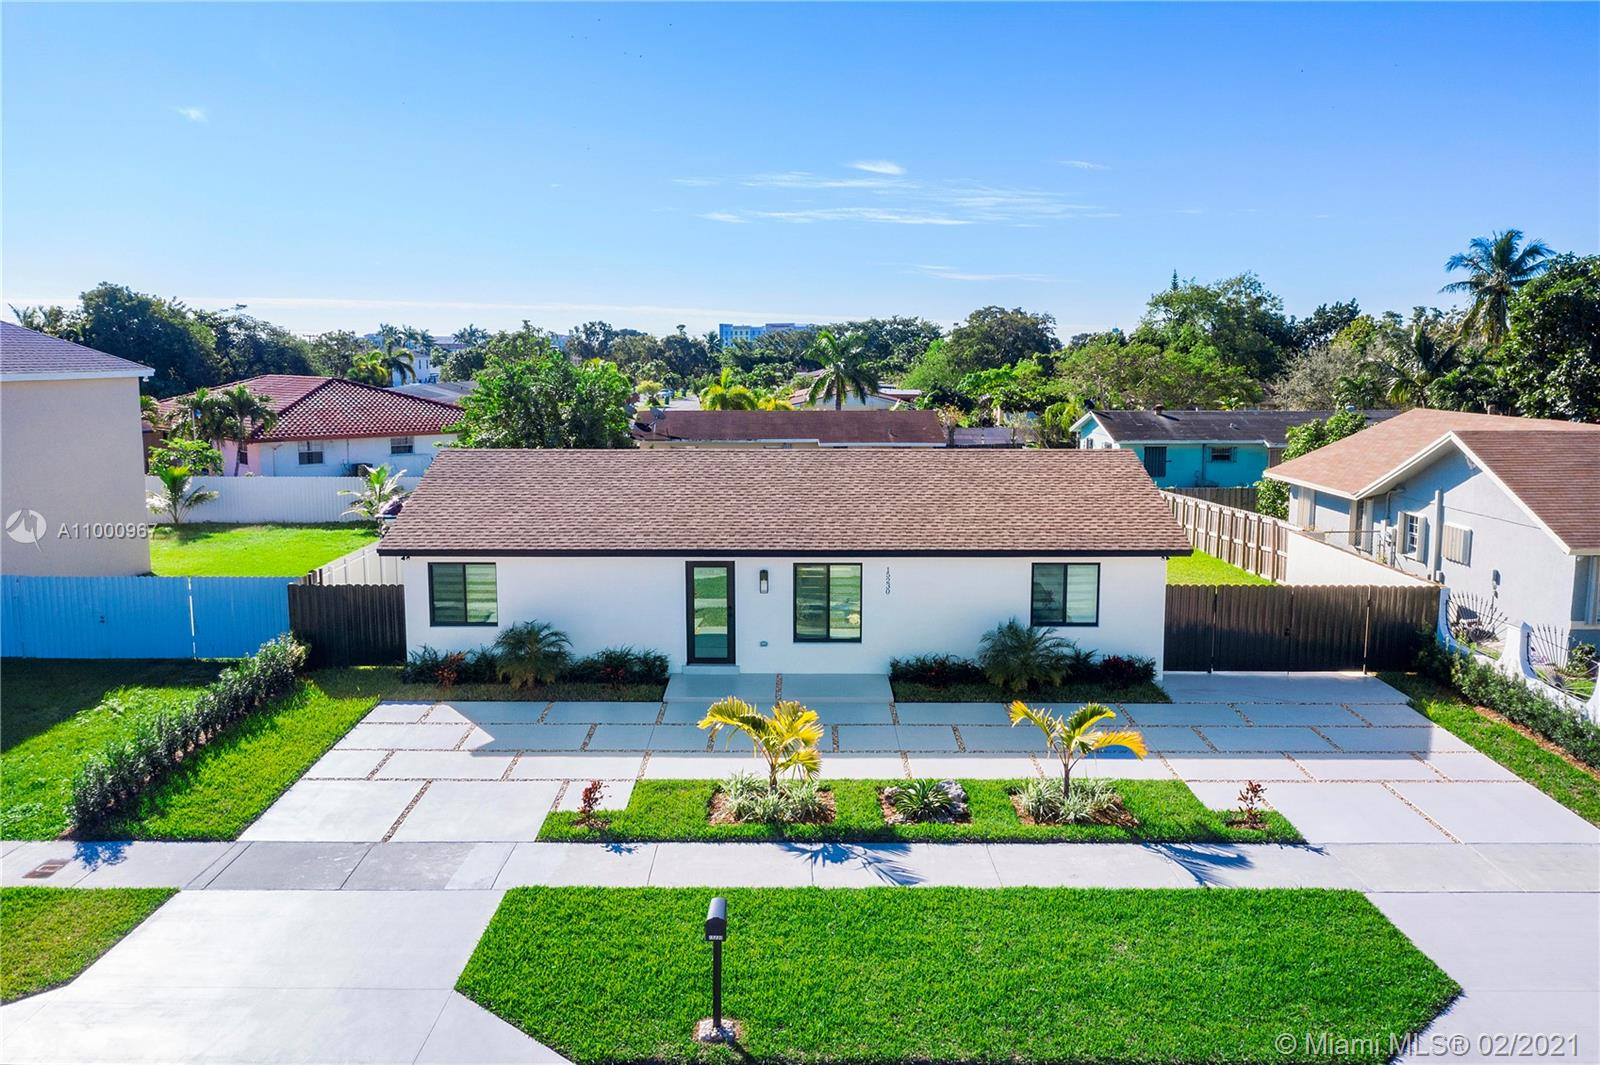 15230 SW 302nd St Property Photo - Homestead, FL real estate listing